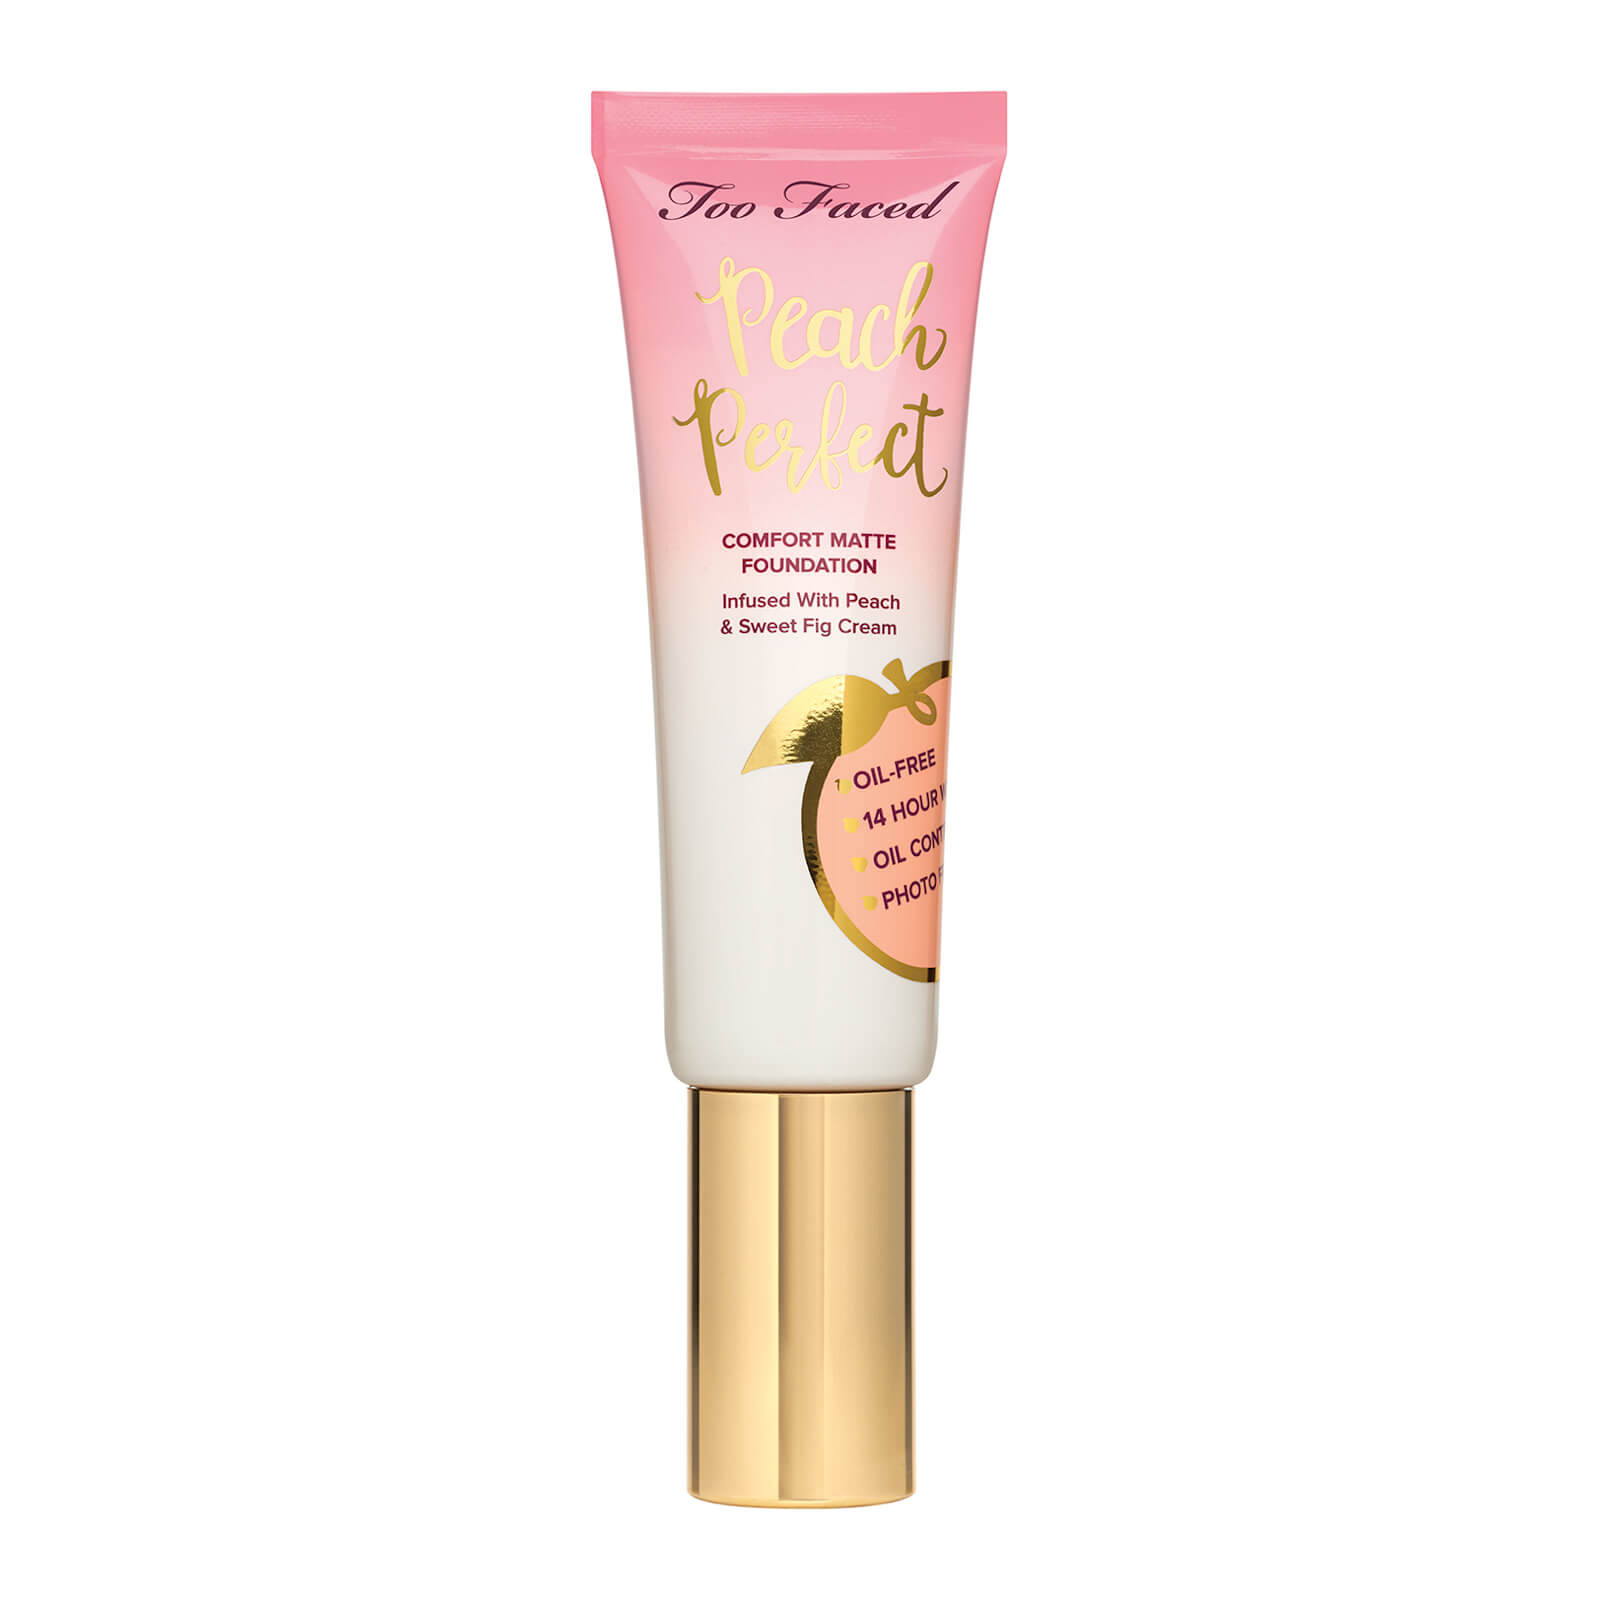 Too Faced Peach Perfect Comfort Matte Foundation (Various Shades) - Butterscotch